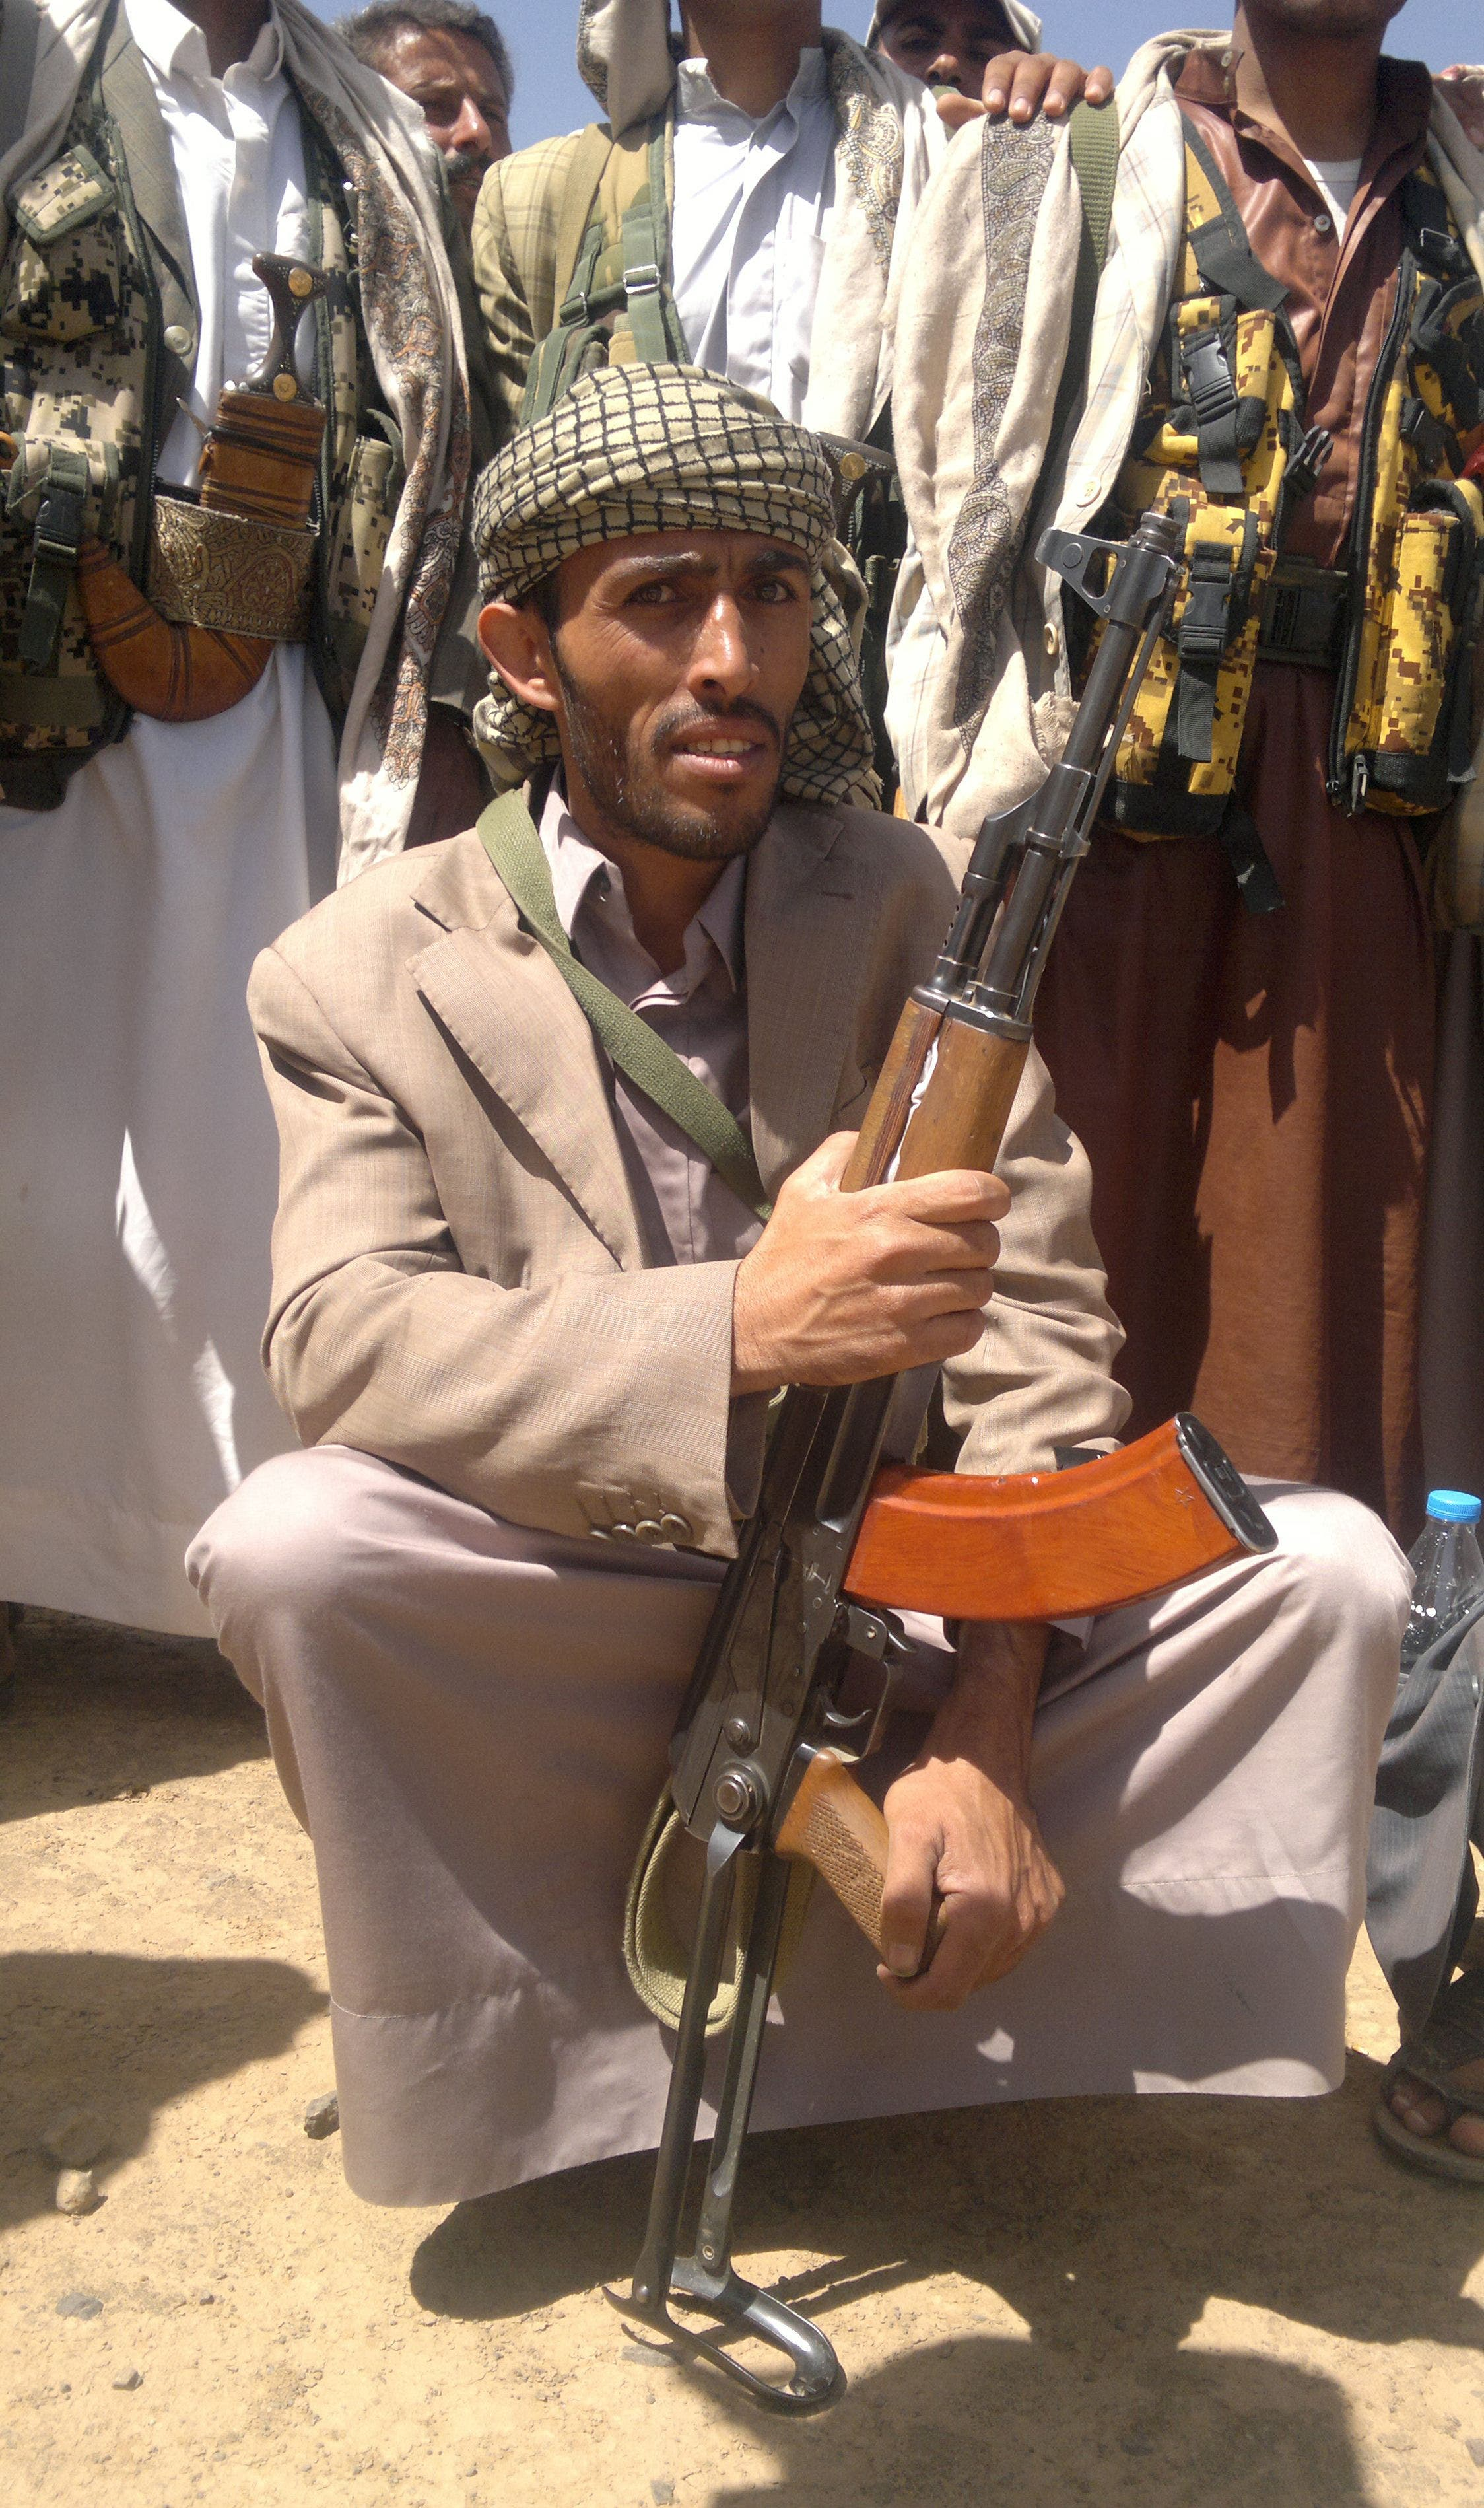 A Yemeni Houthi tribesman poses for a photo in Amran, fifty kilometres north of the capital Sanaa on April 10, 2014. (AFP)